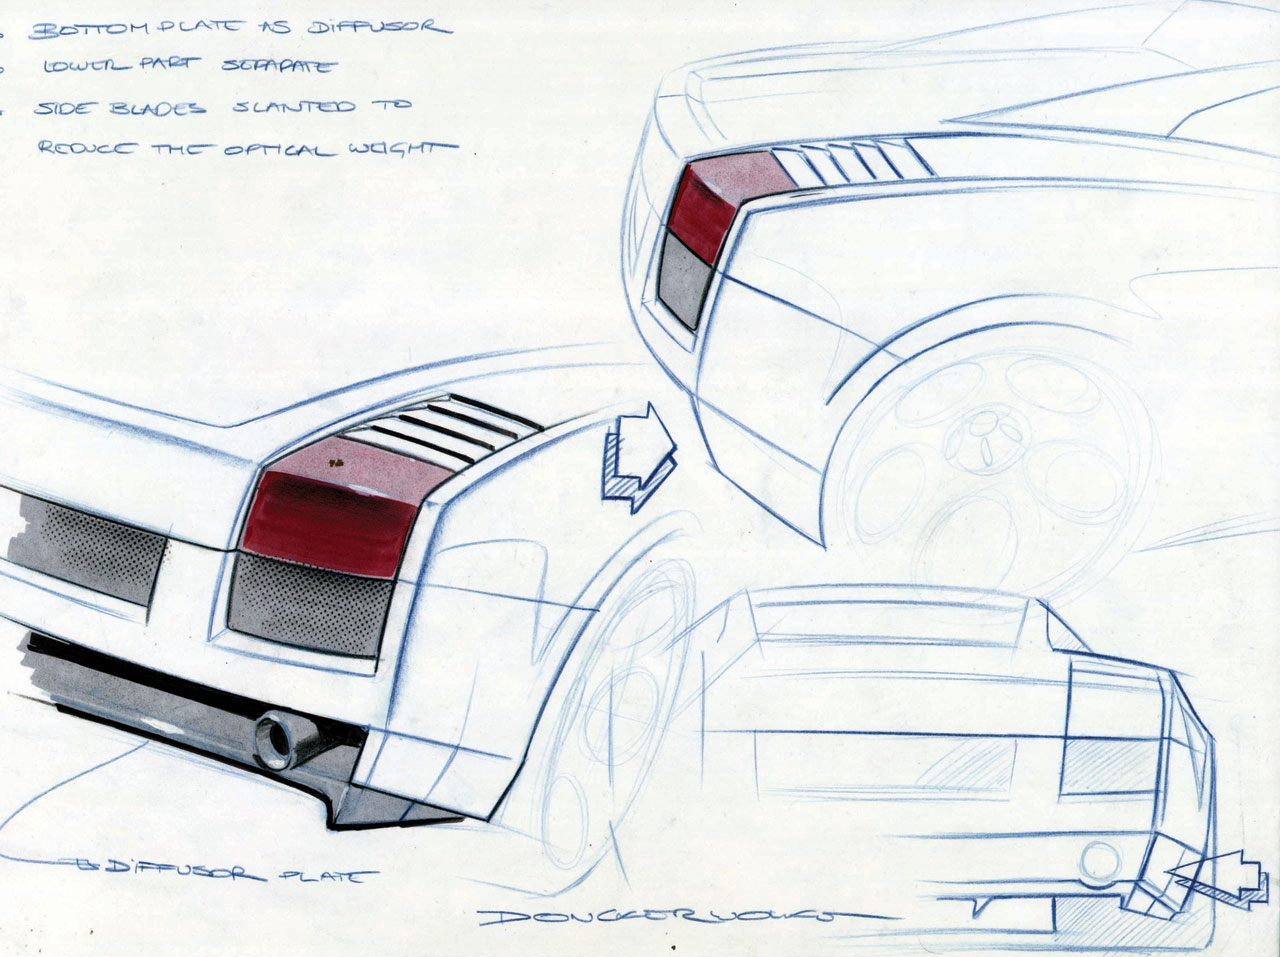 Lamborghini gallardo design sketch